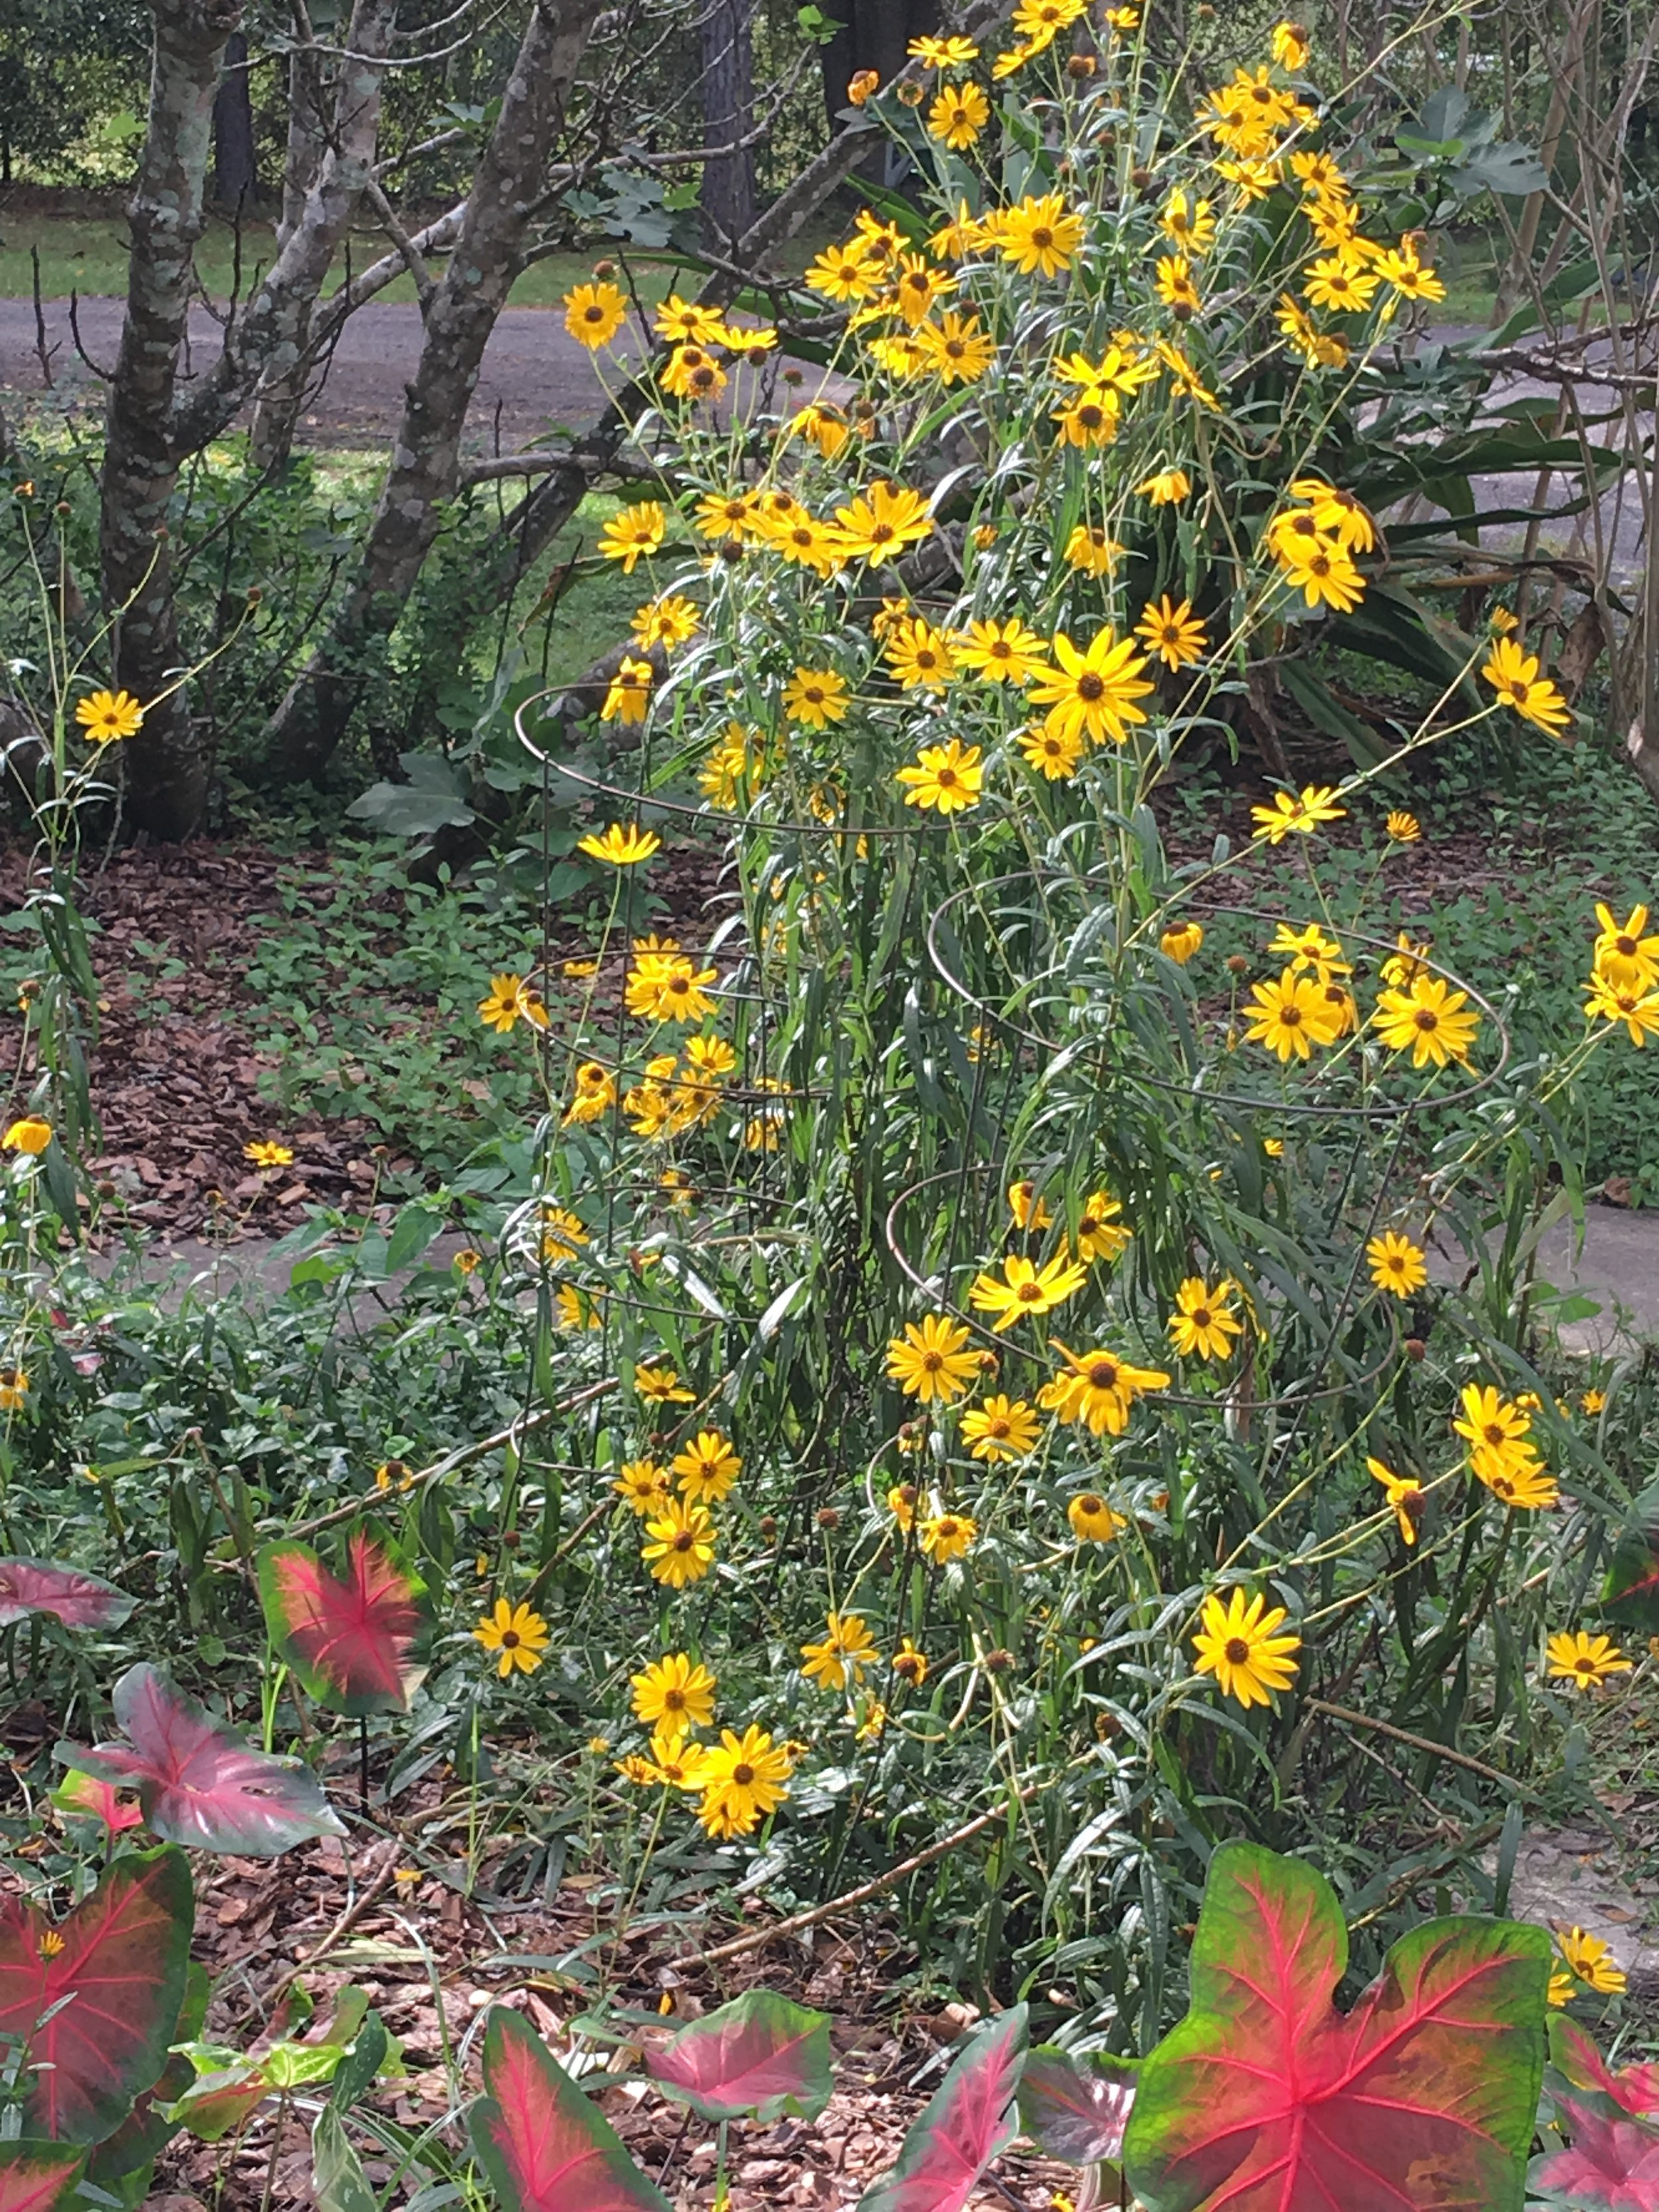 The tall yellow plants are coreopsis and the colorful leaves in the foreground are caladiums.